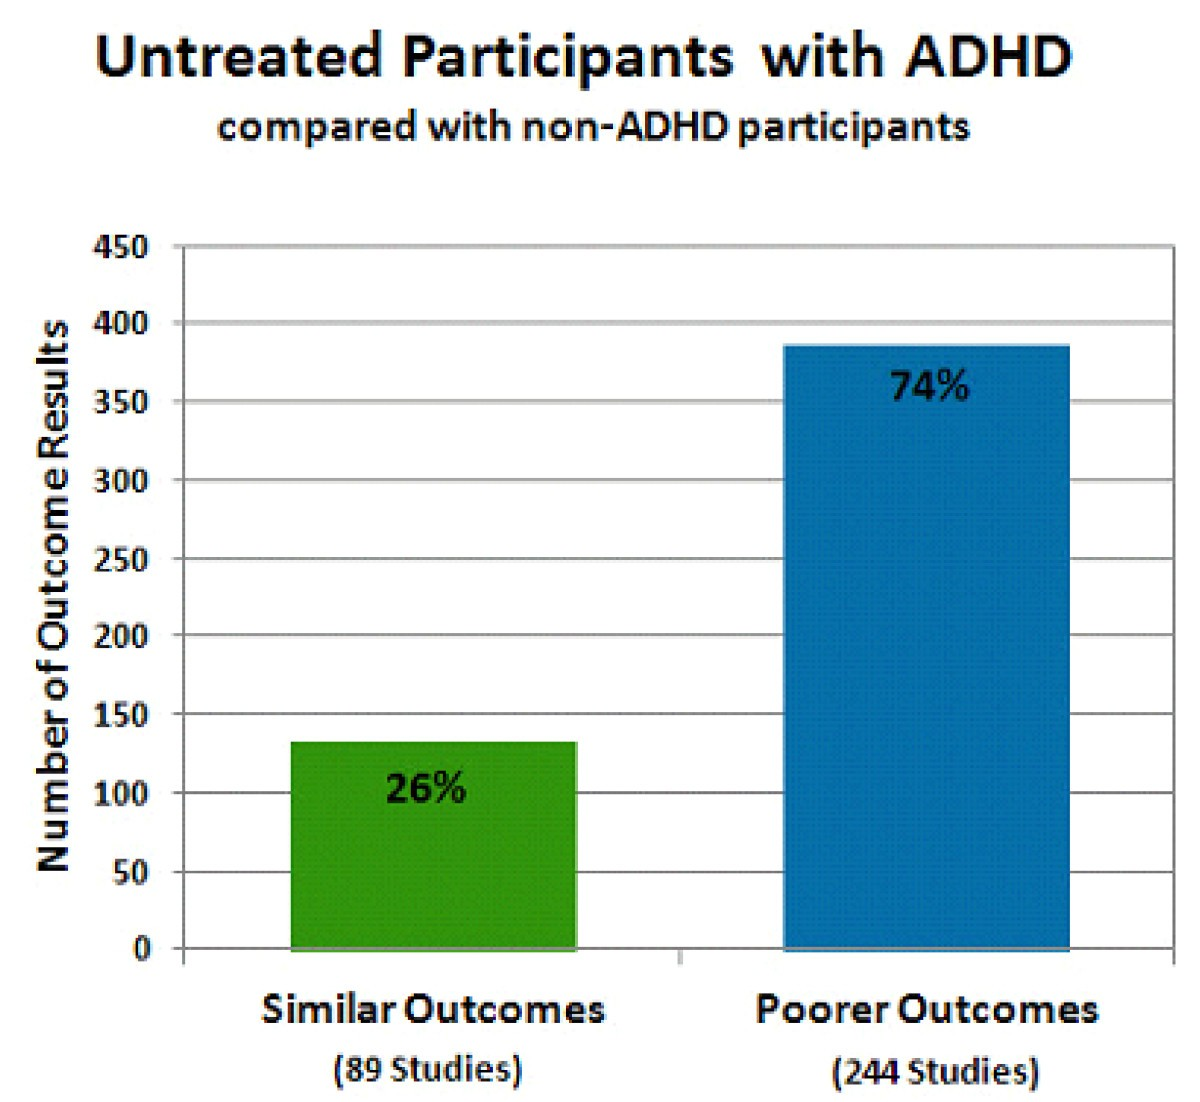 an overview of adhd or attention deficit hyperactivity disorder in children Attention deficit hyperactivity disorder (adhd) is a disorder that manifests in childhood with symptoms of hyperactivity, impulsivity, and/or inattention the s it seems to us that you have your javascript disabled on your browser.